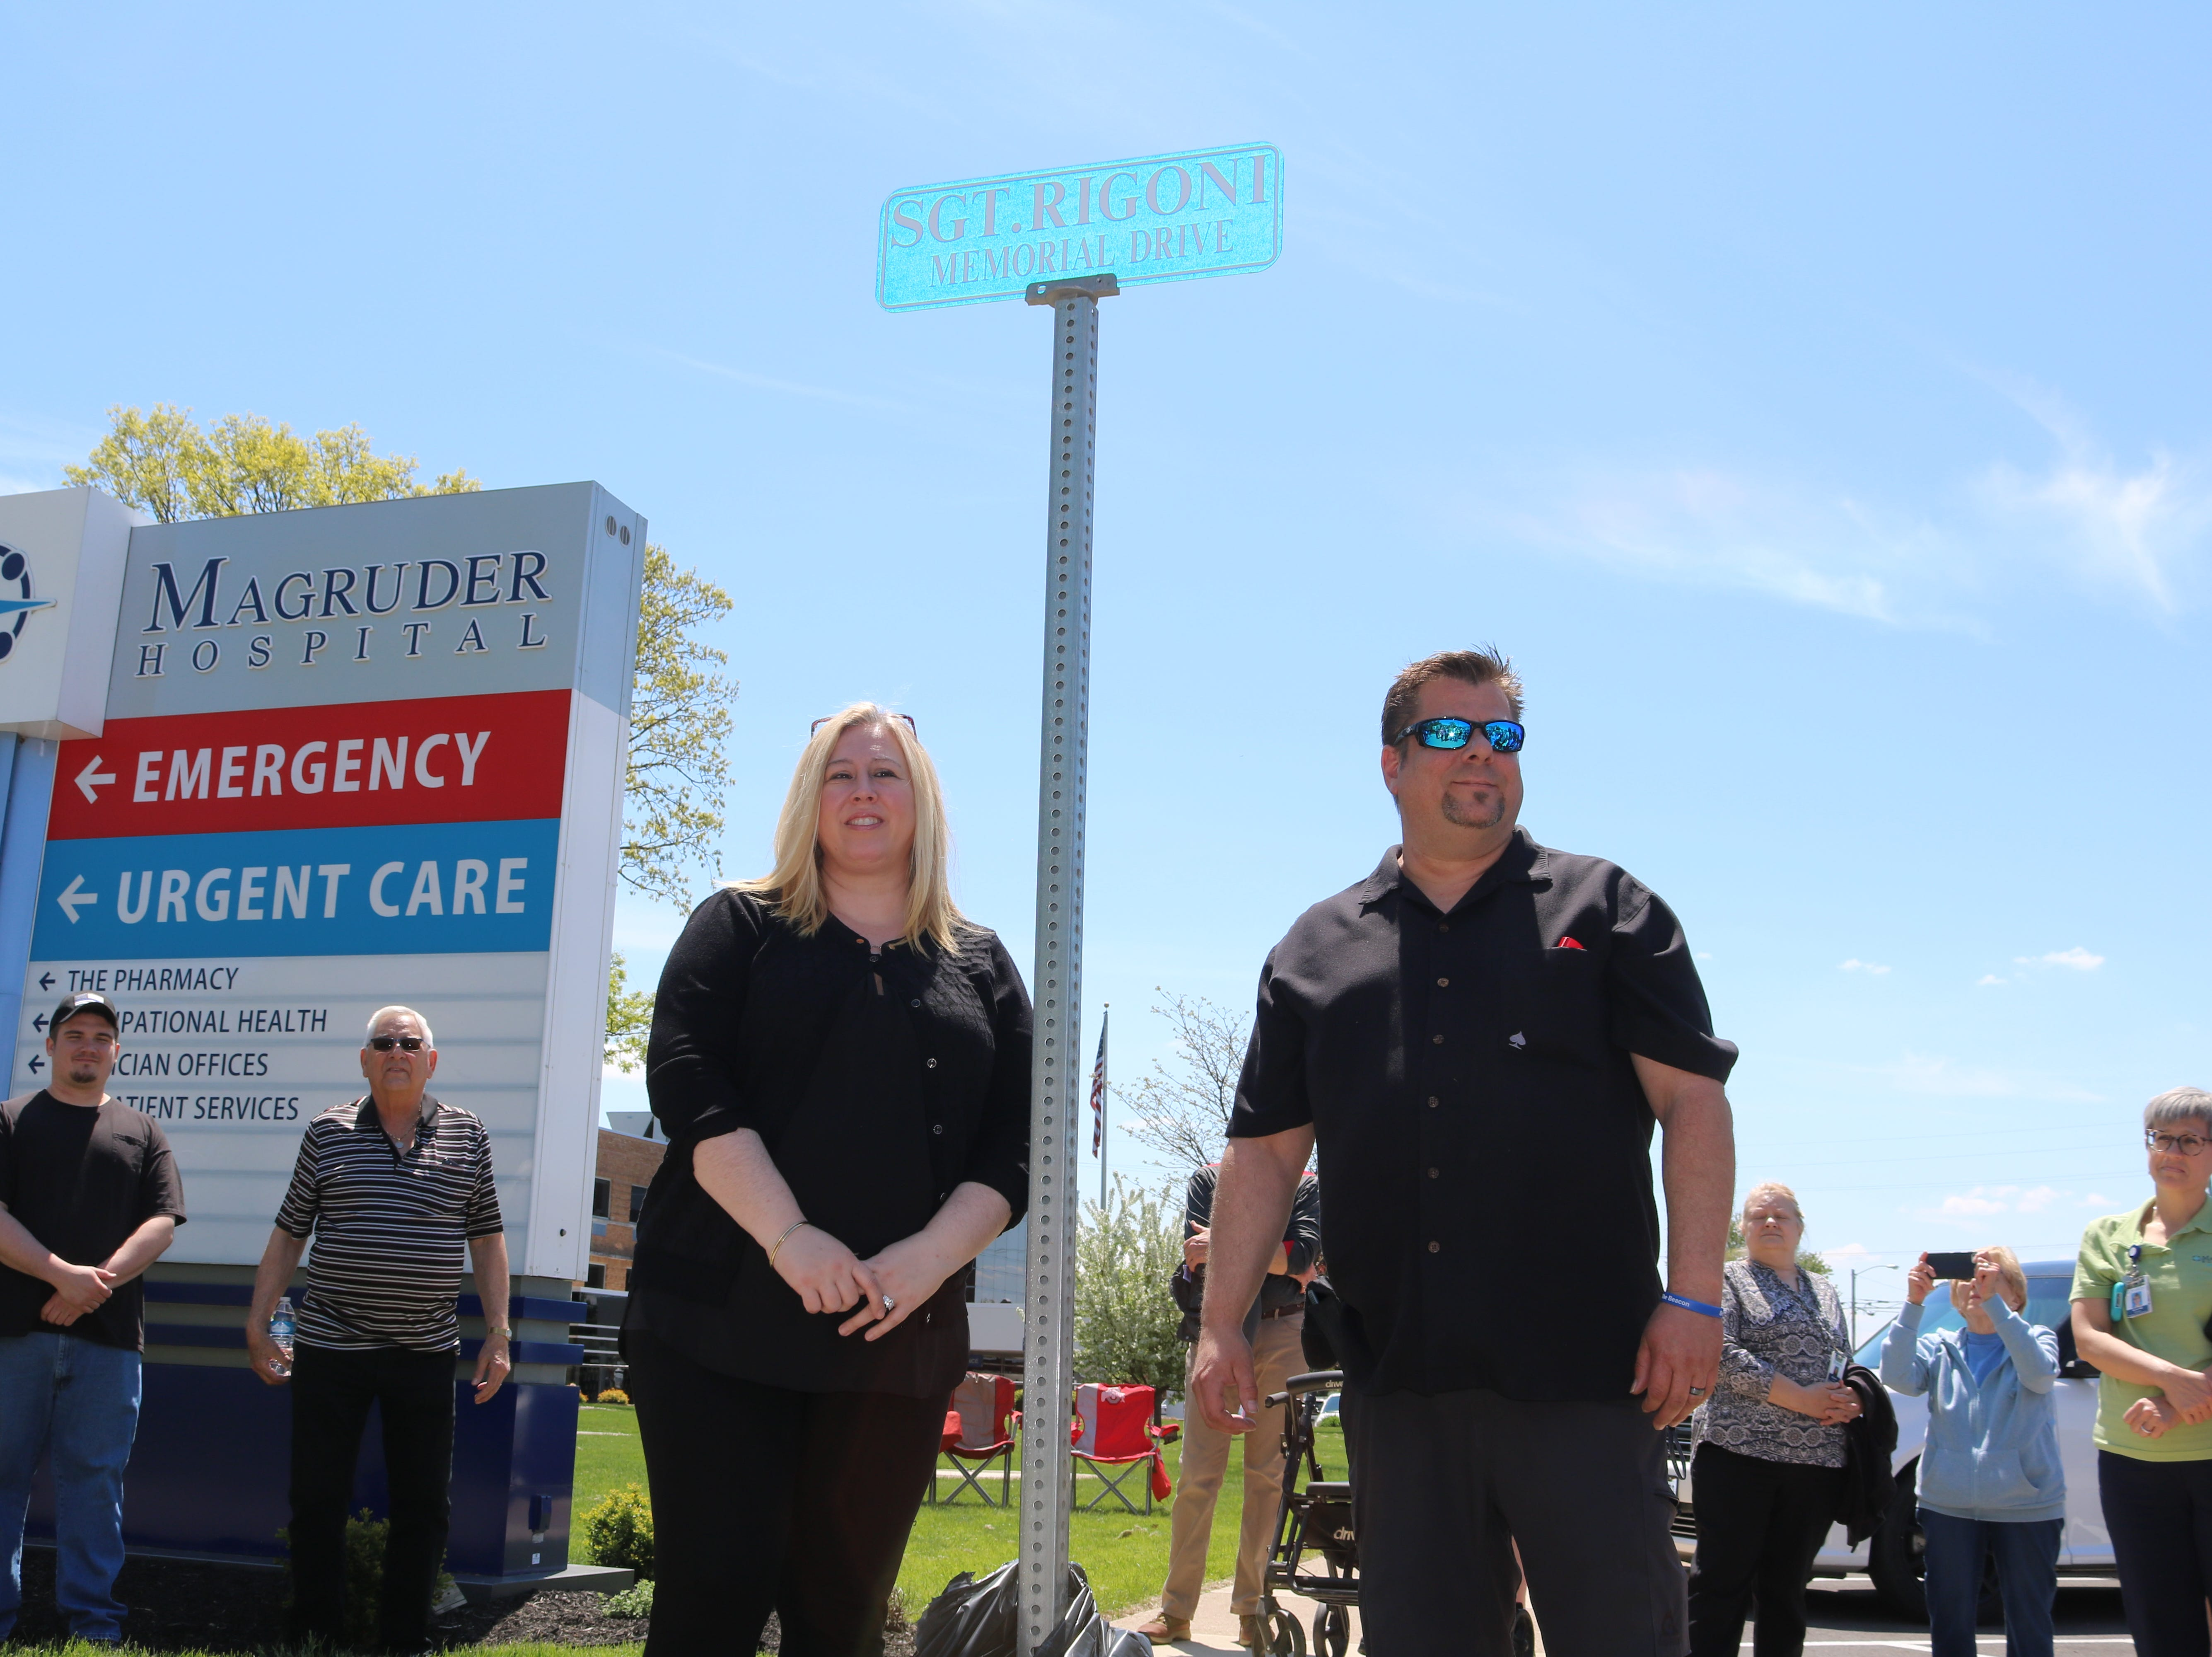 Kelly and Billy Rigoni, son of the late Sgt. Robert B. Rigoni, who died in a plane crash while responding to an emergency reported on Kelleys Island in 1983, stands before the sign marking an eastern portion of 6th Street in his father's honor.